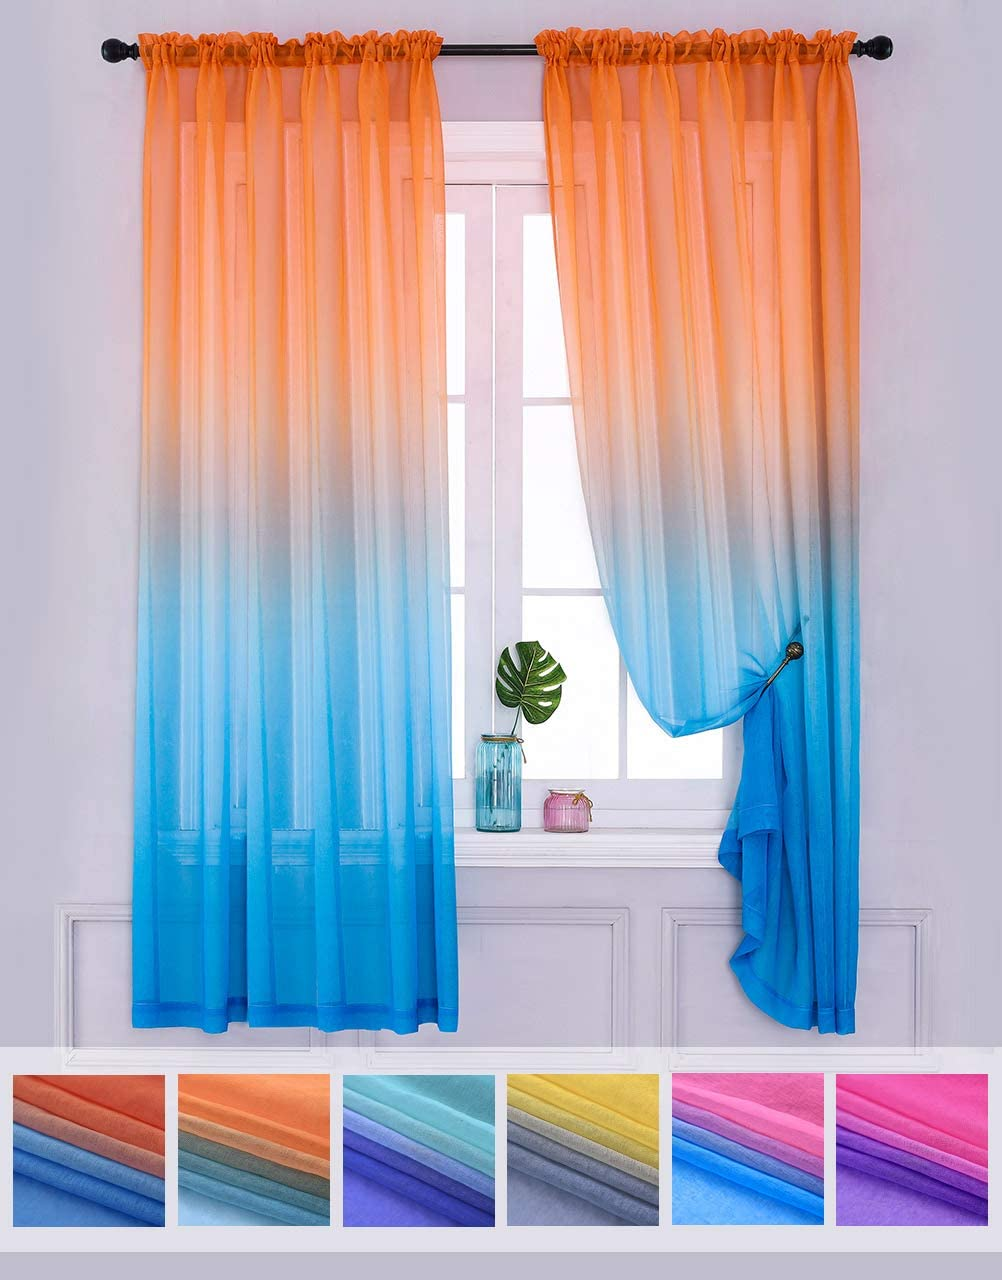 Yancorp Sheer Curtain 2 Panels Semi Bedroom Curtains 84 inches Length Linen Orange Blue Ombre Curtains Drapes Girls Living Room Kids Kitchen Window 63 72 96 inches Long Orange Blue, 52 x84